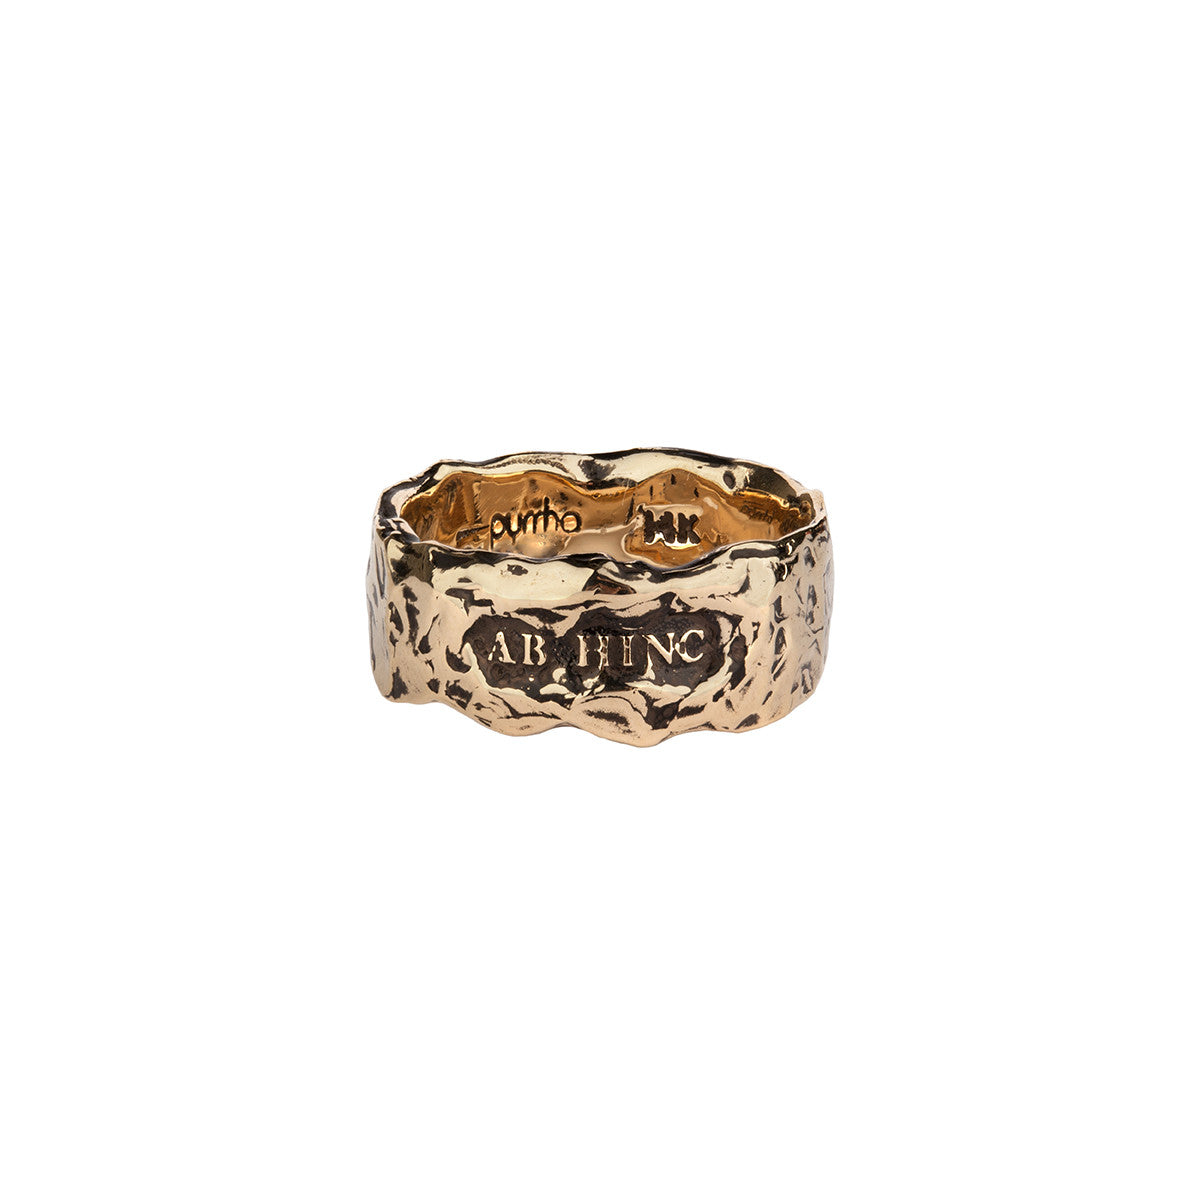 Ab Hinc (From Here On) Wide 14K Gold Textured Band Ring